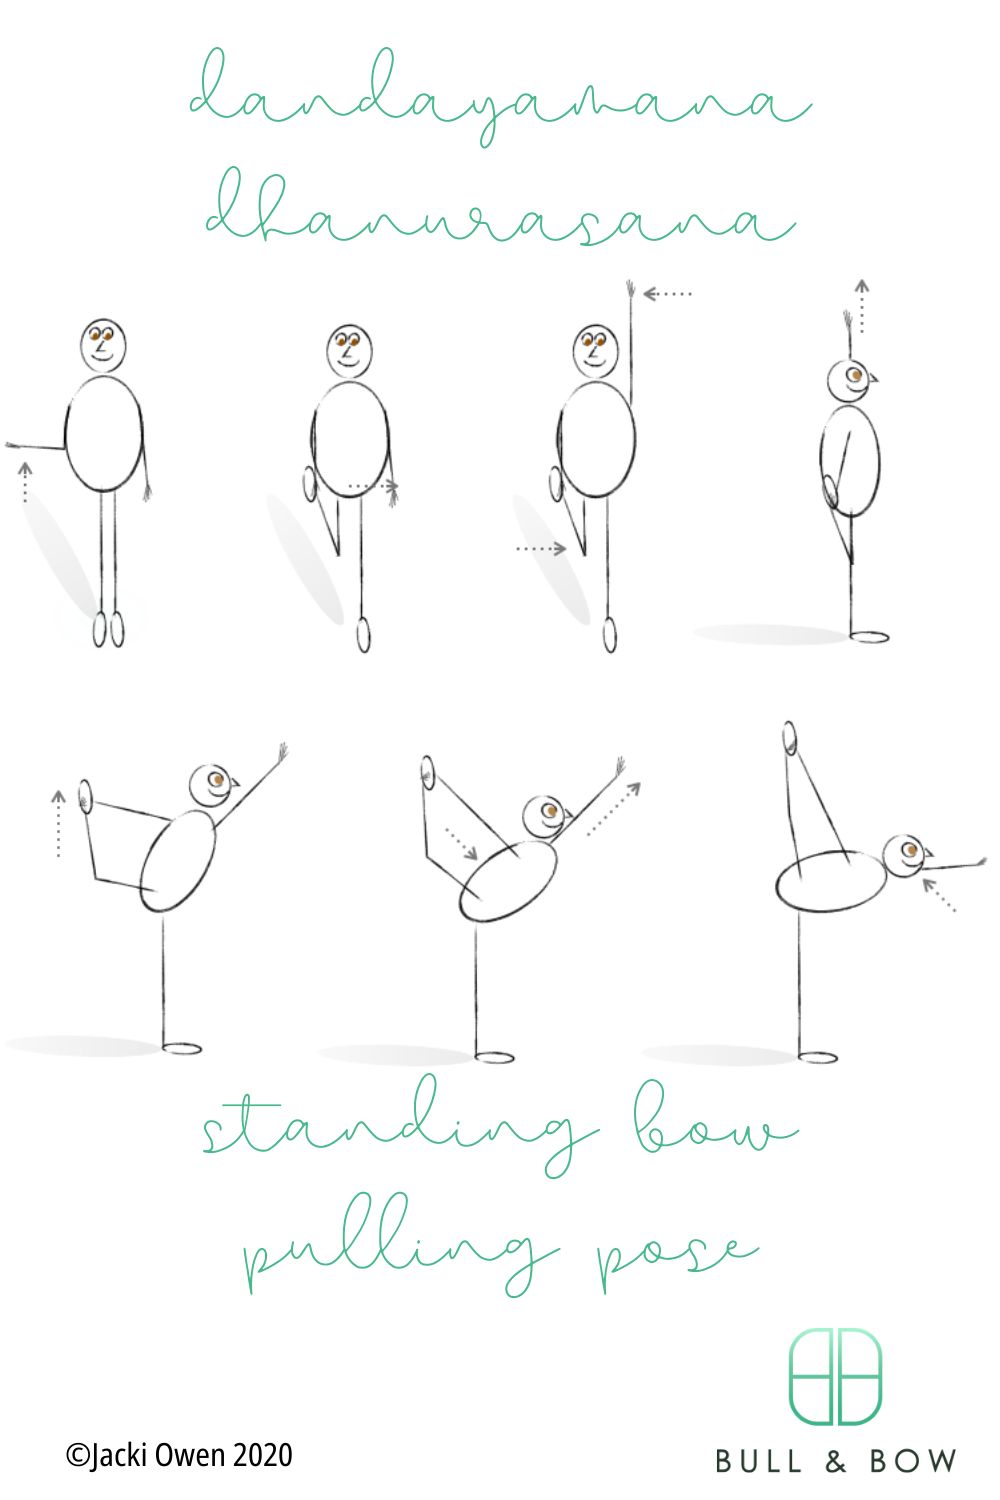 standing bow pulling pose from the bikram yoga series